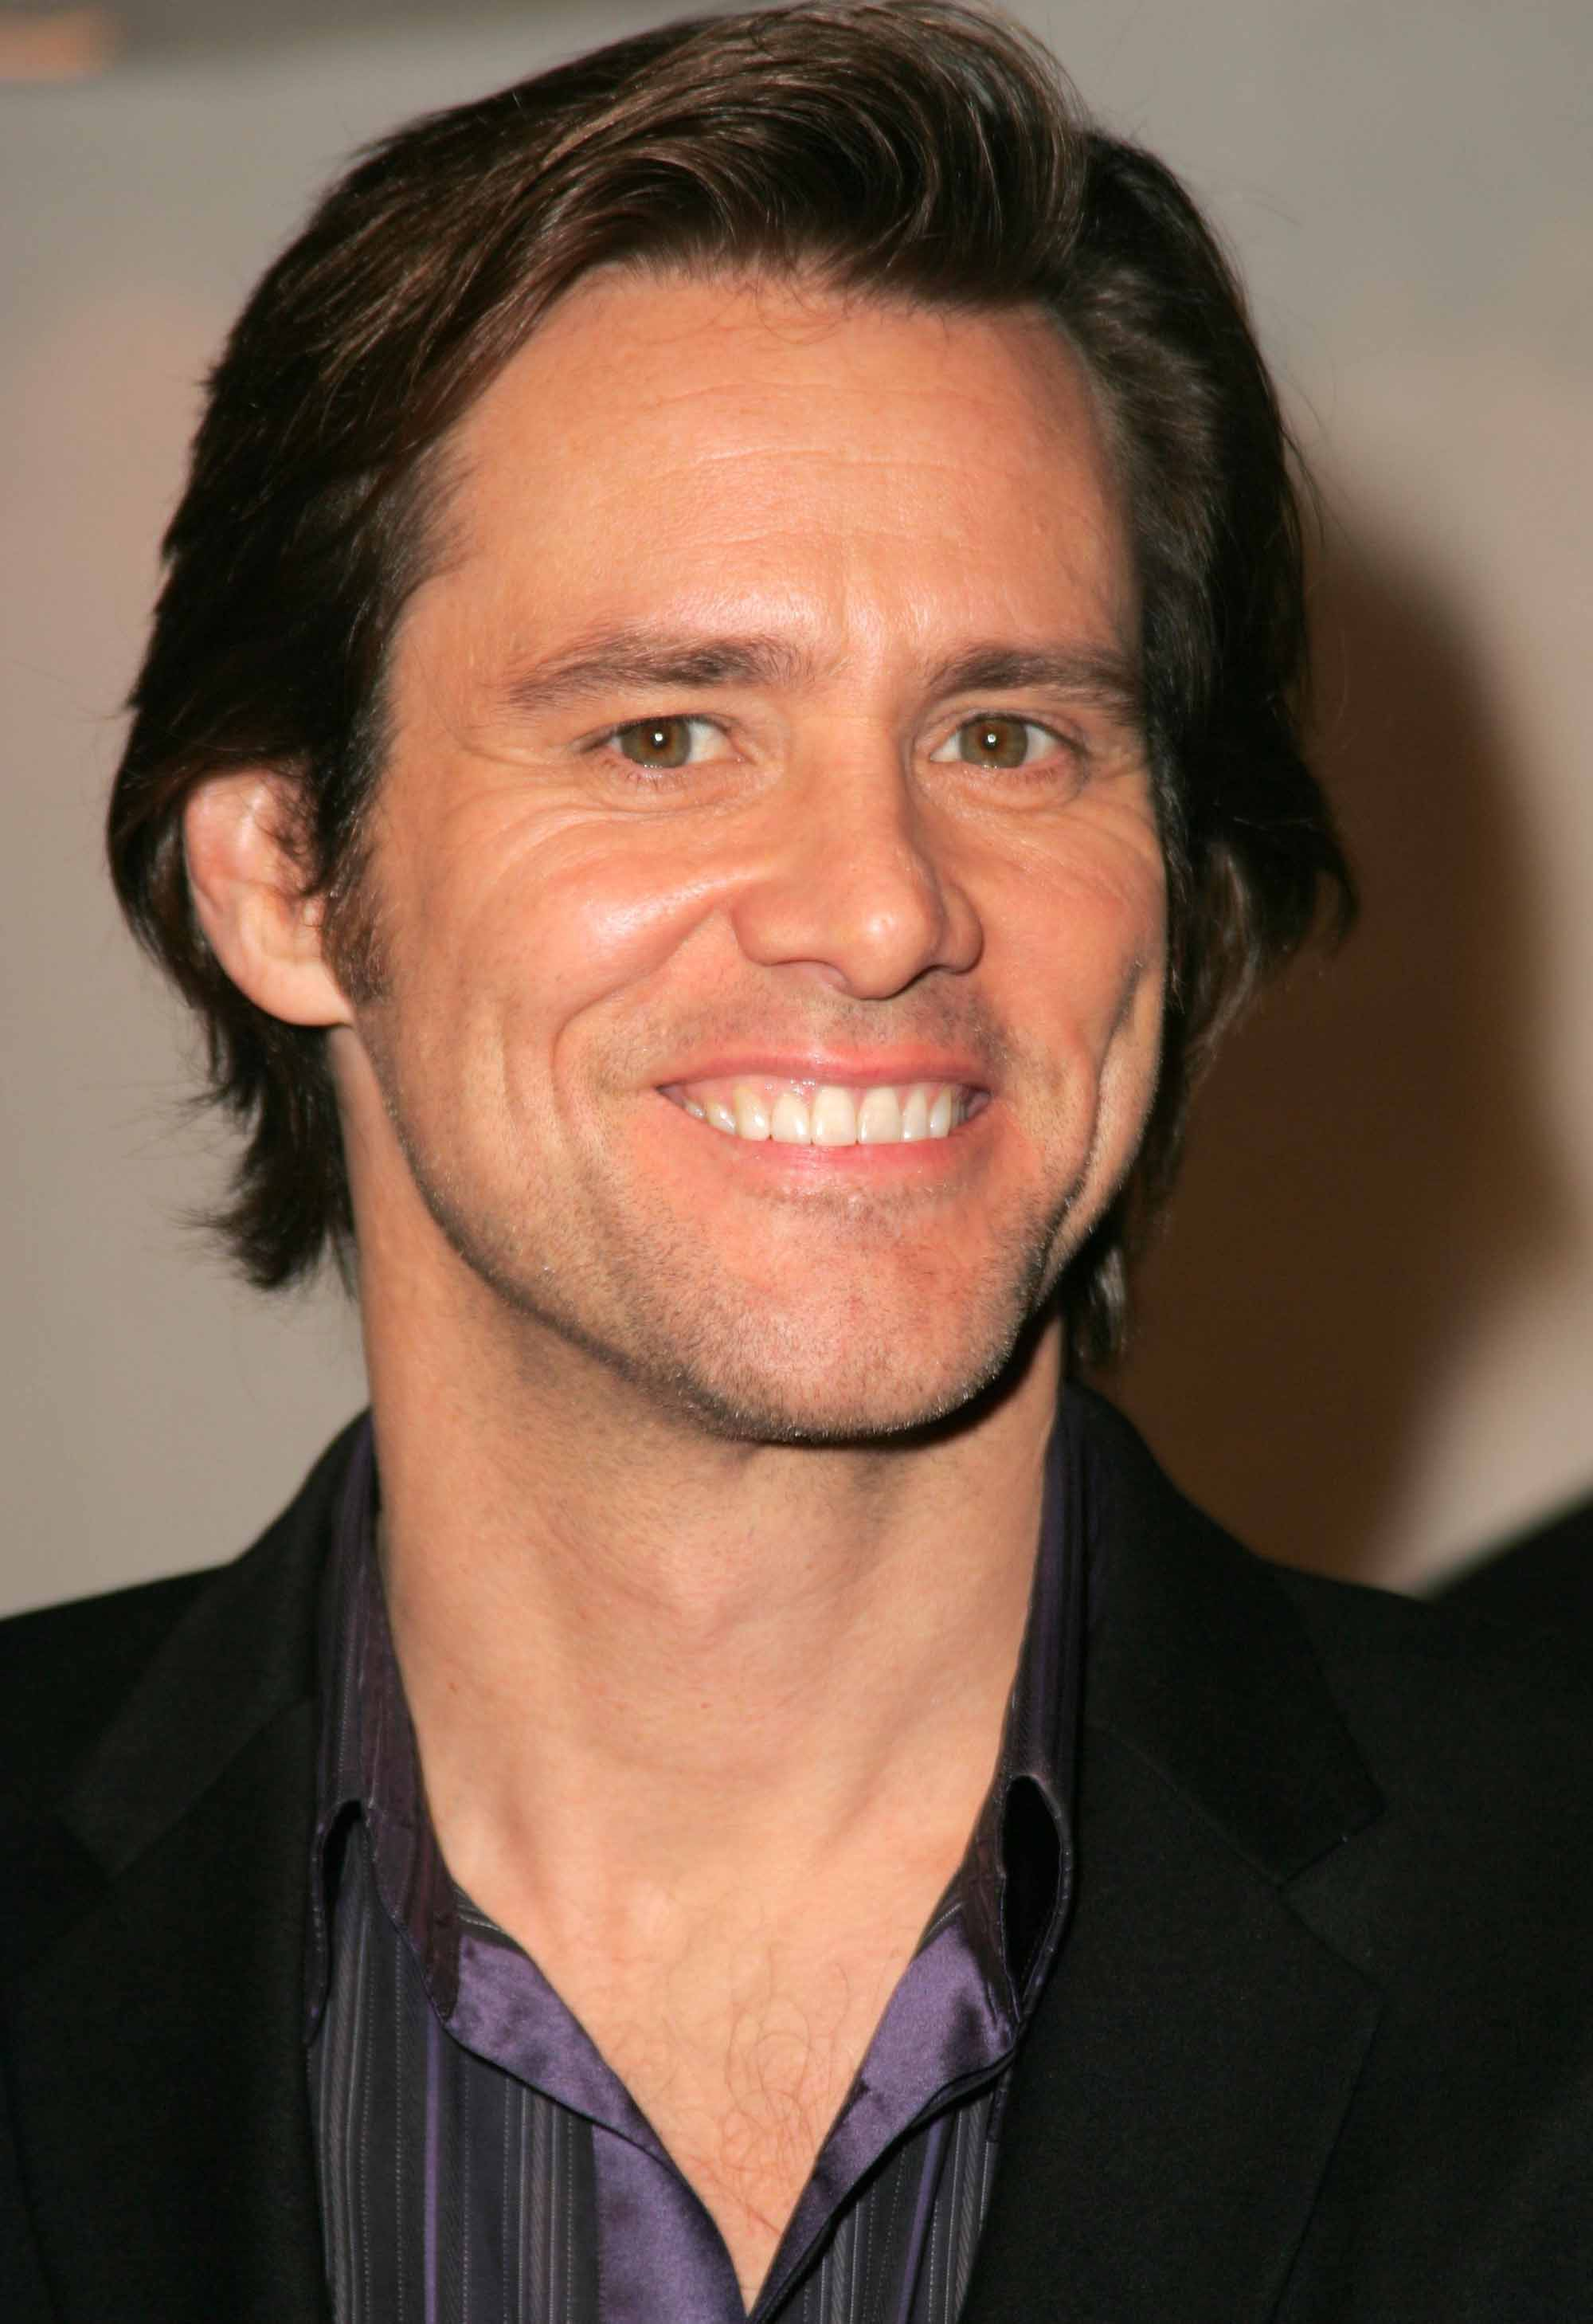 Jim Carrey - The Canad... Jim Carrey